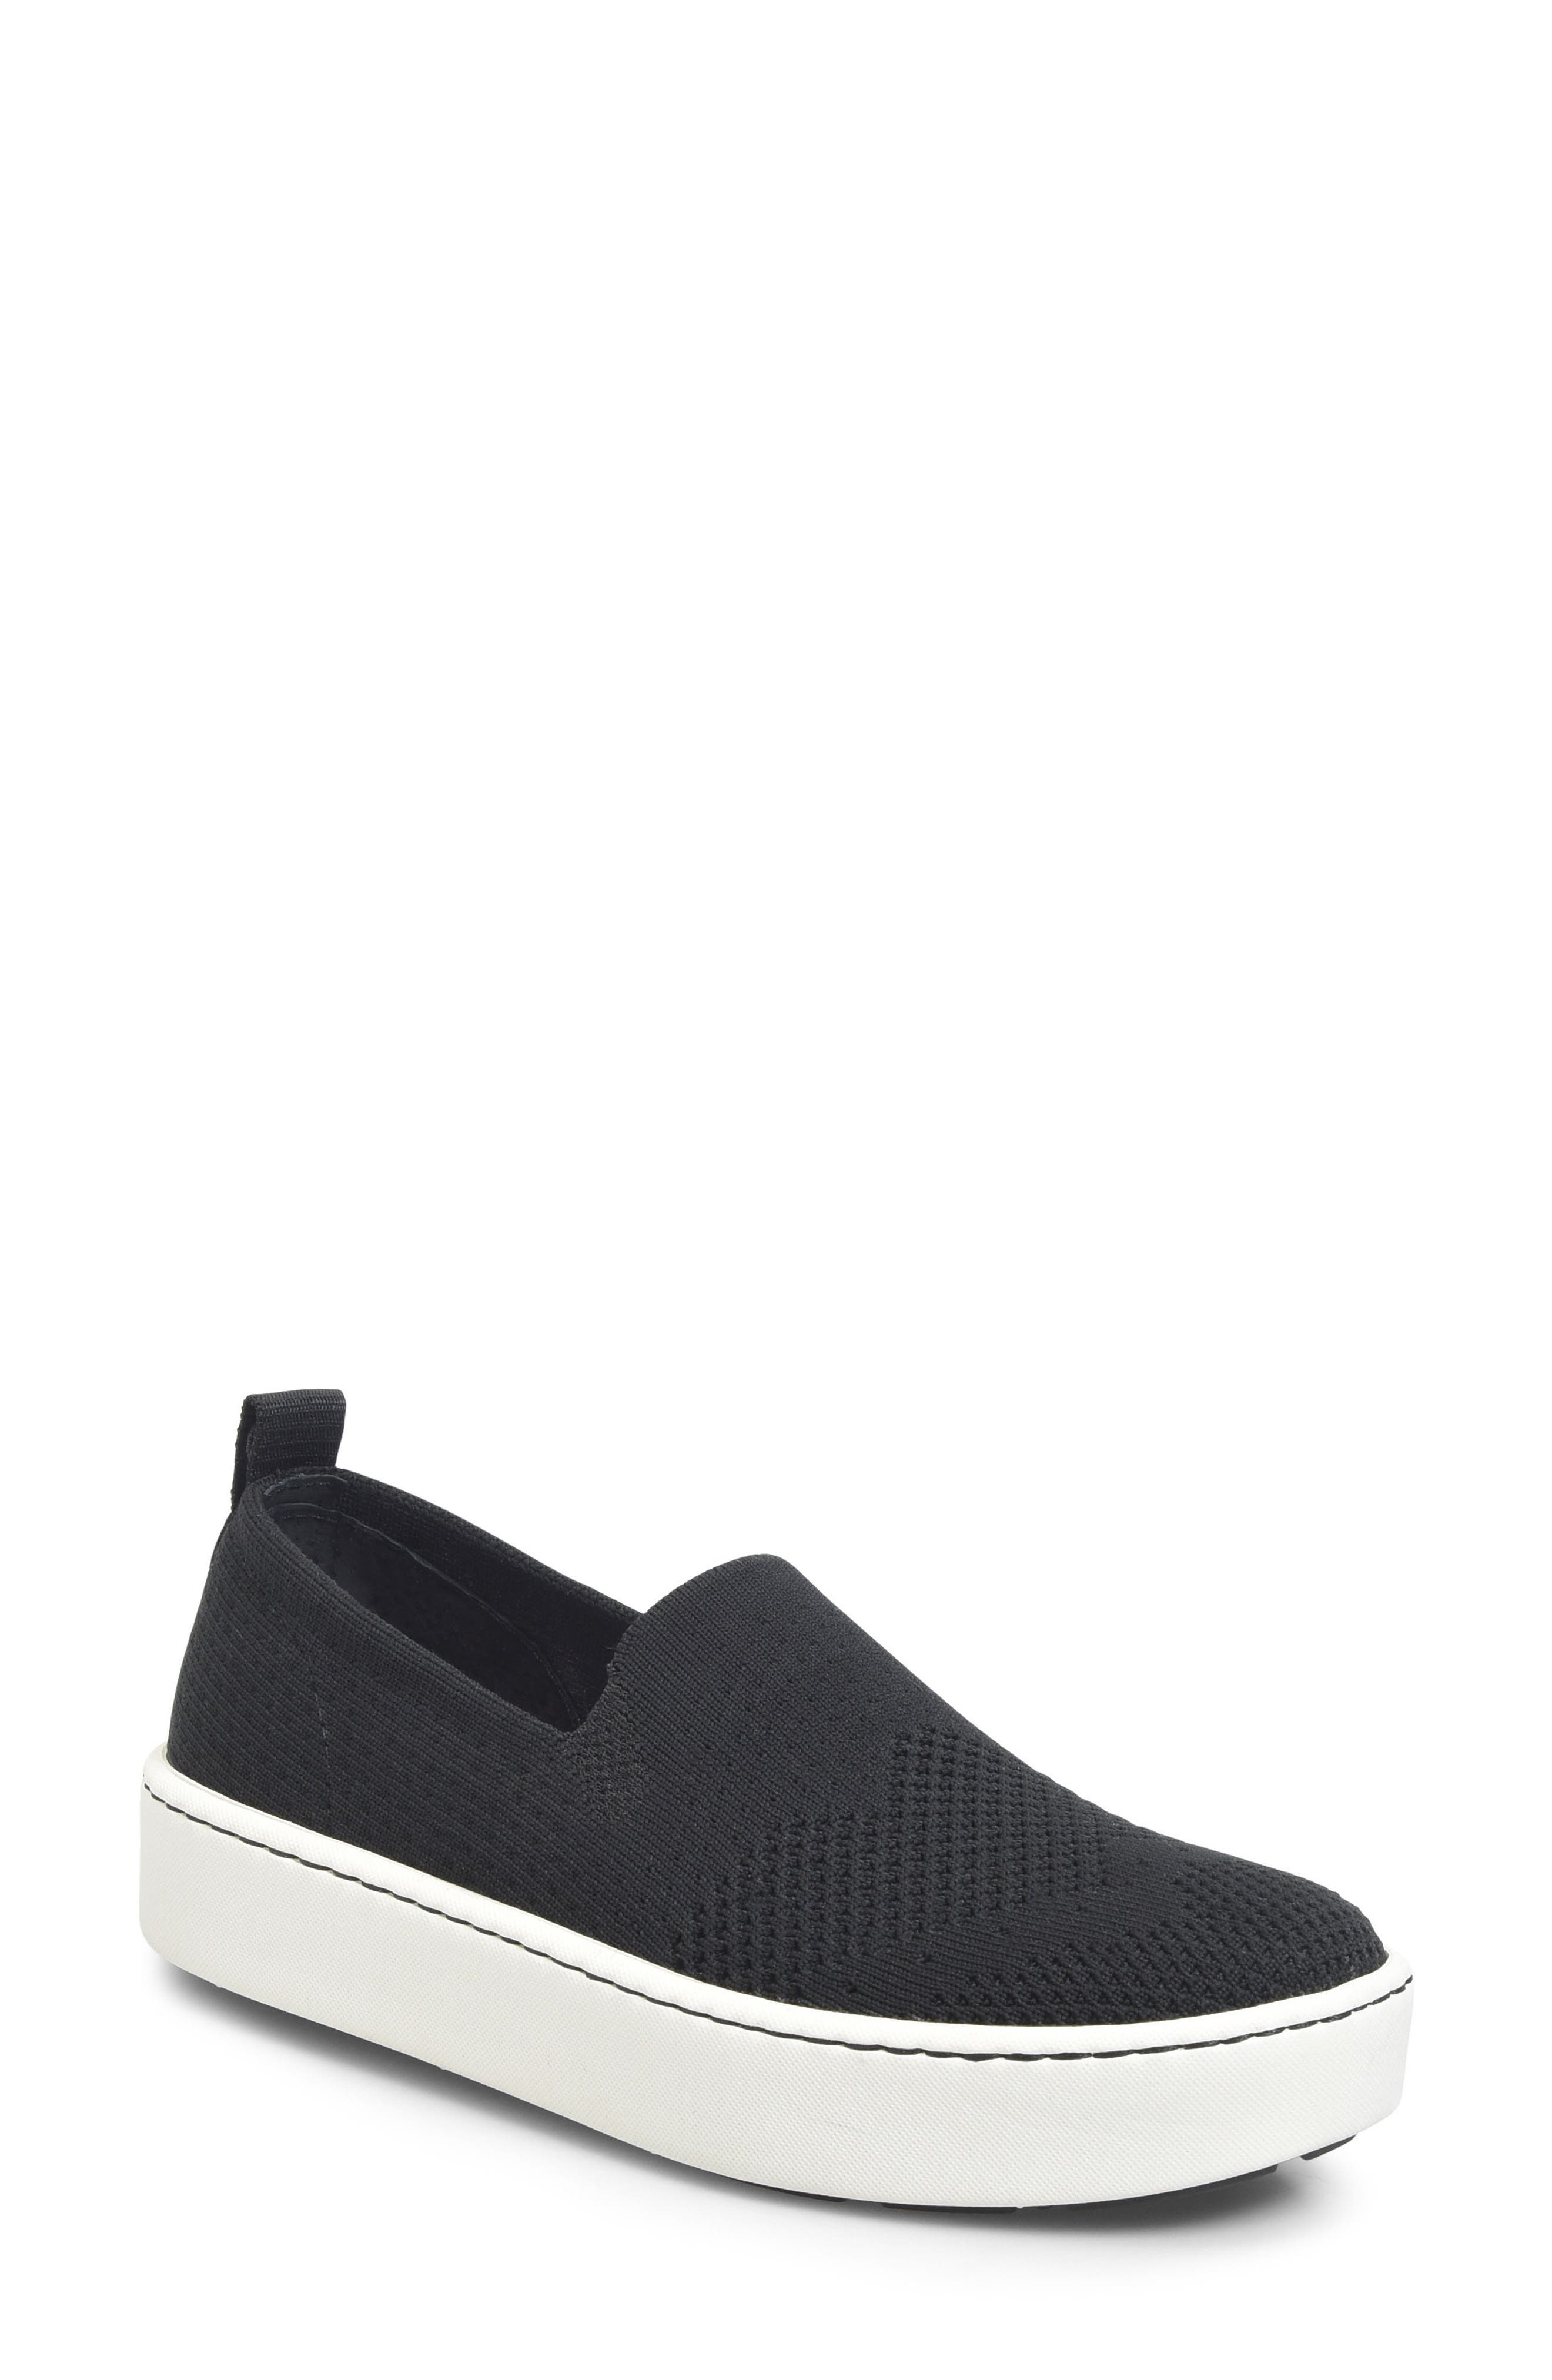 Sun Slip-On Sneaker,                             Main thumbnail 1, color,                             BLACK FABRIC